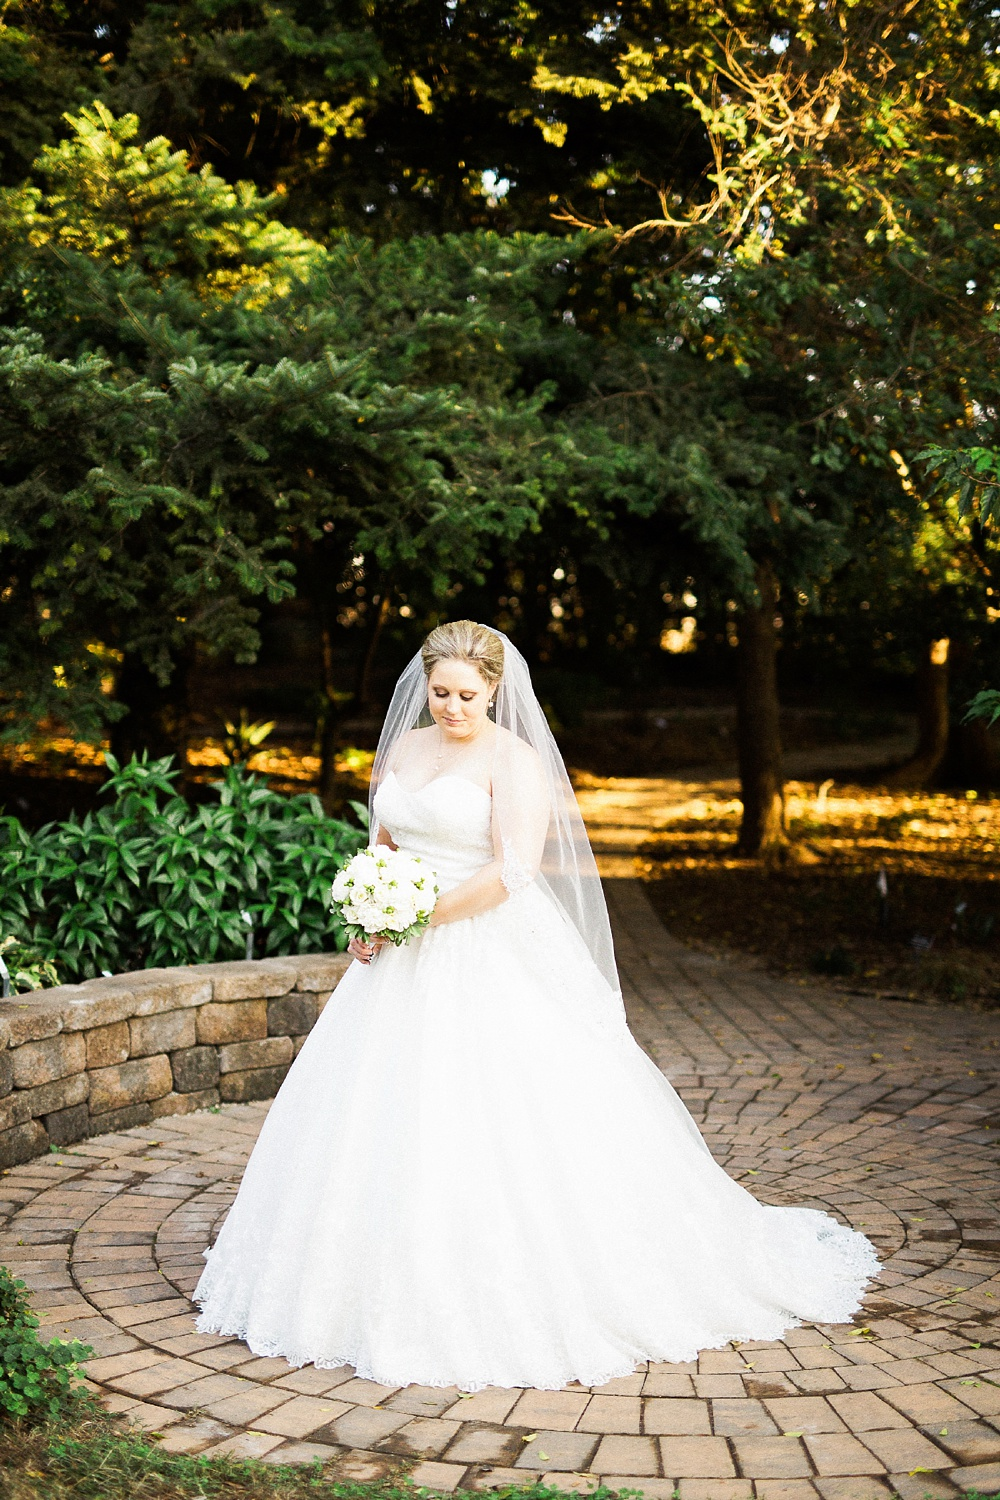 Rachael Bowman Photography-JC Raulston Arboretum-Raleigh-NC-Bridal Session-Photographer-Photos_0011.jpg